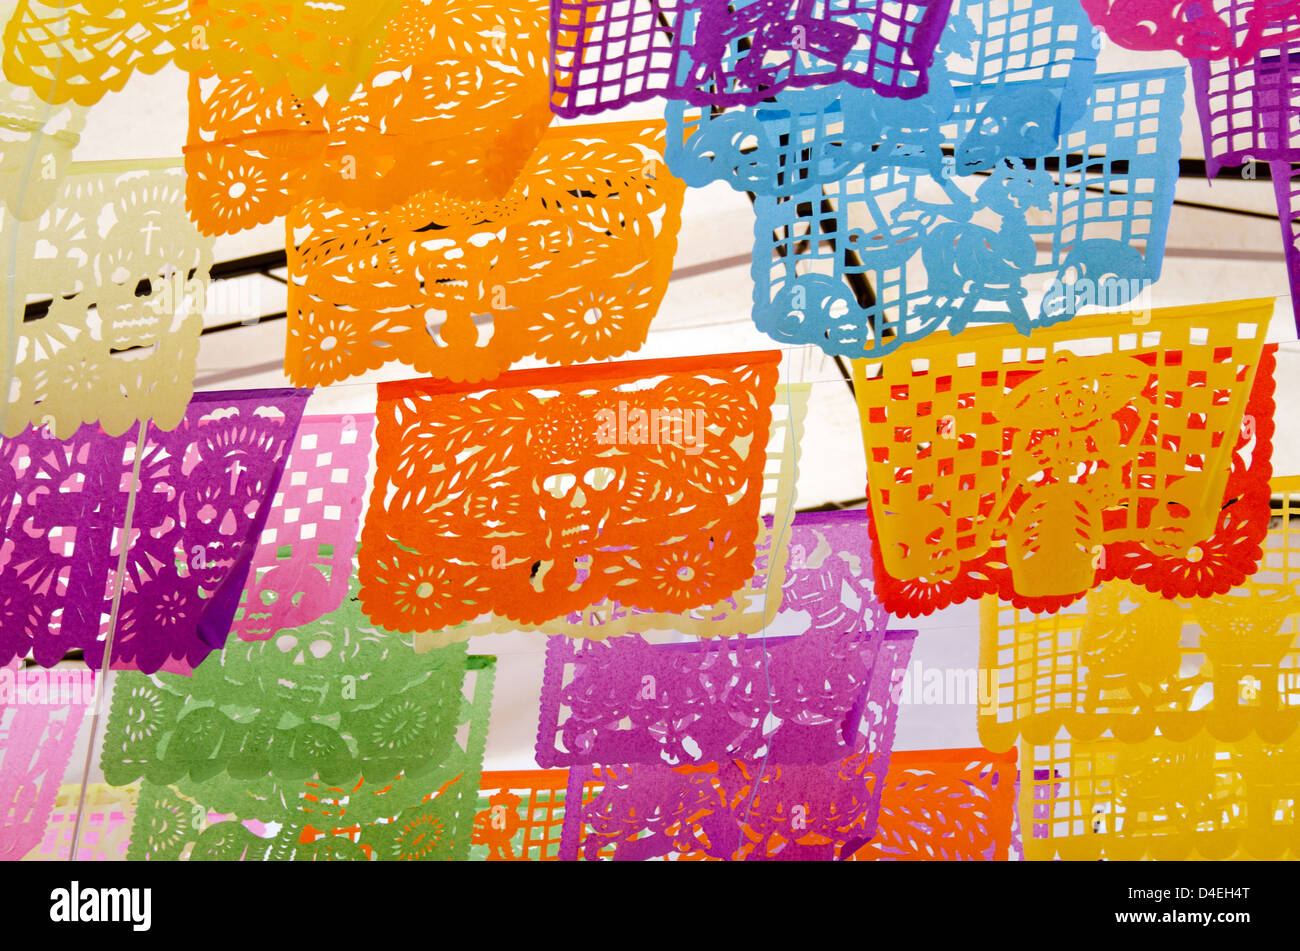 Brightly Colored Cut Paper Flags With Day Of The Dead Designs In Oaxaca Mexico